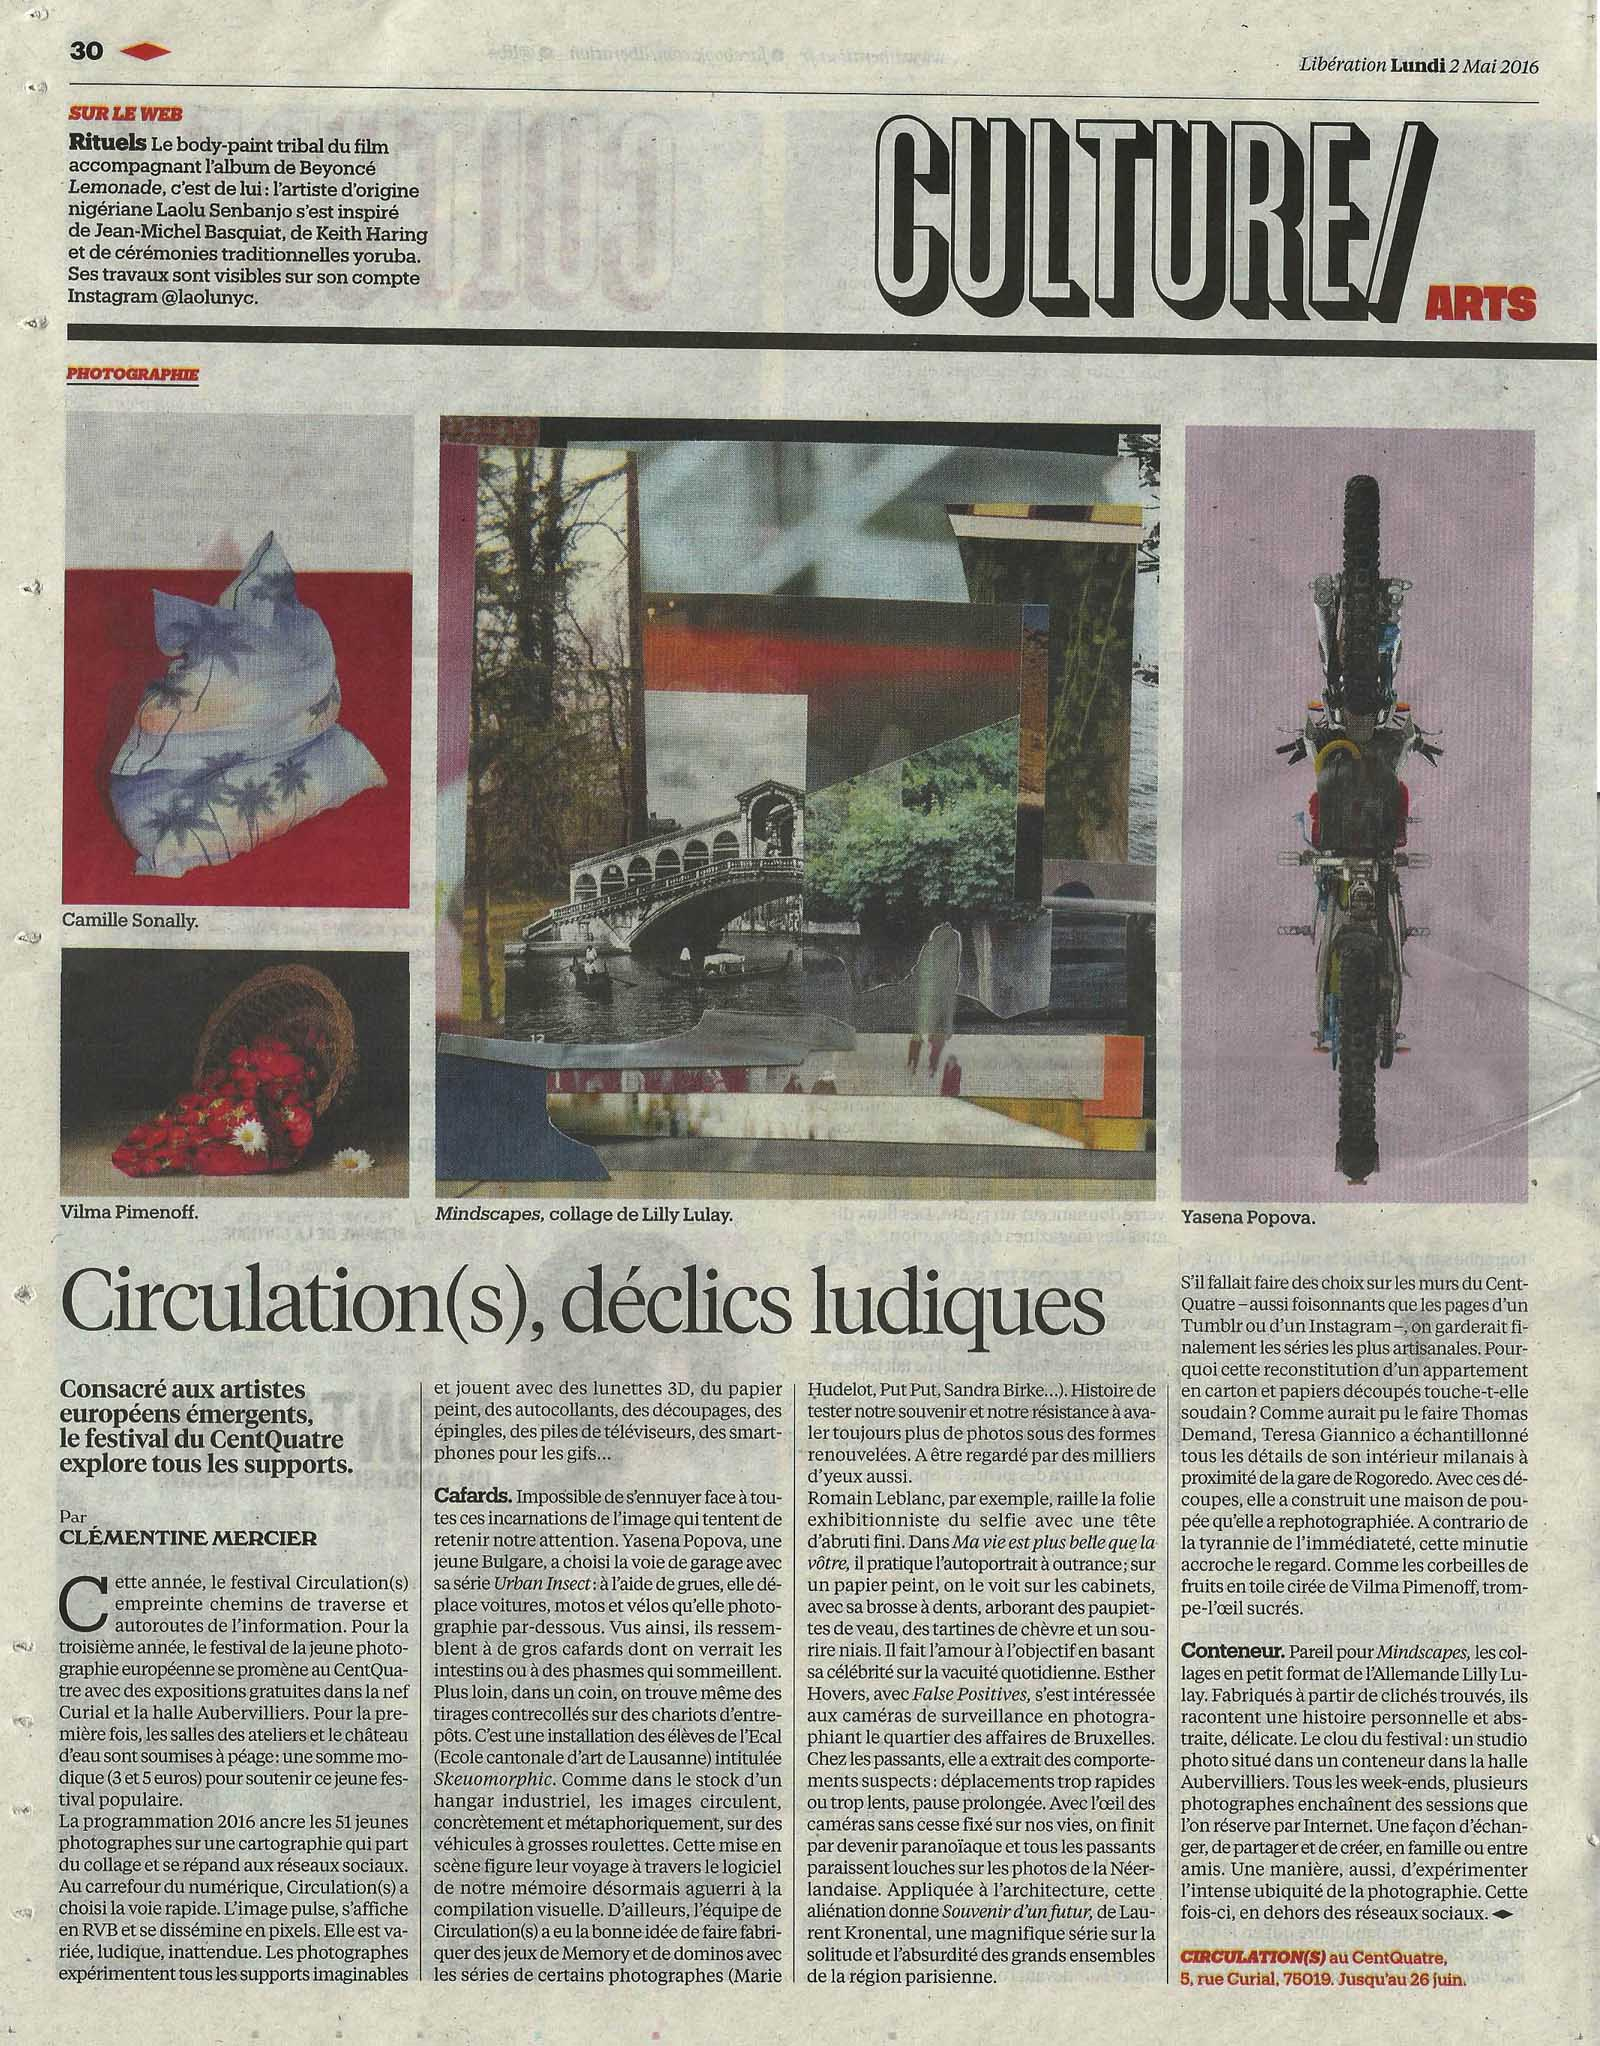 Liberation, Culture: Circulation(s) les delics ludiques. 2nd of May 2016 page: 30